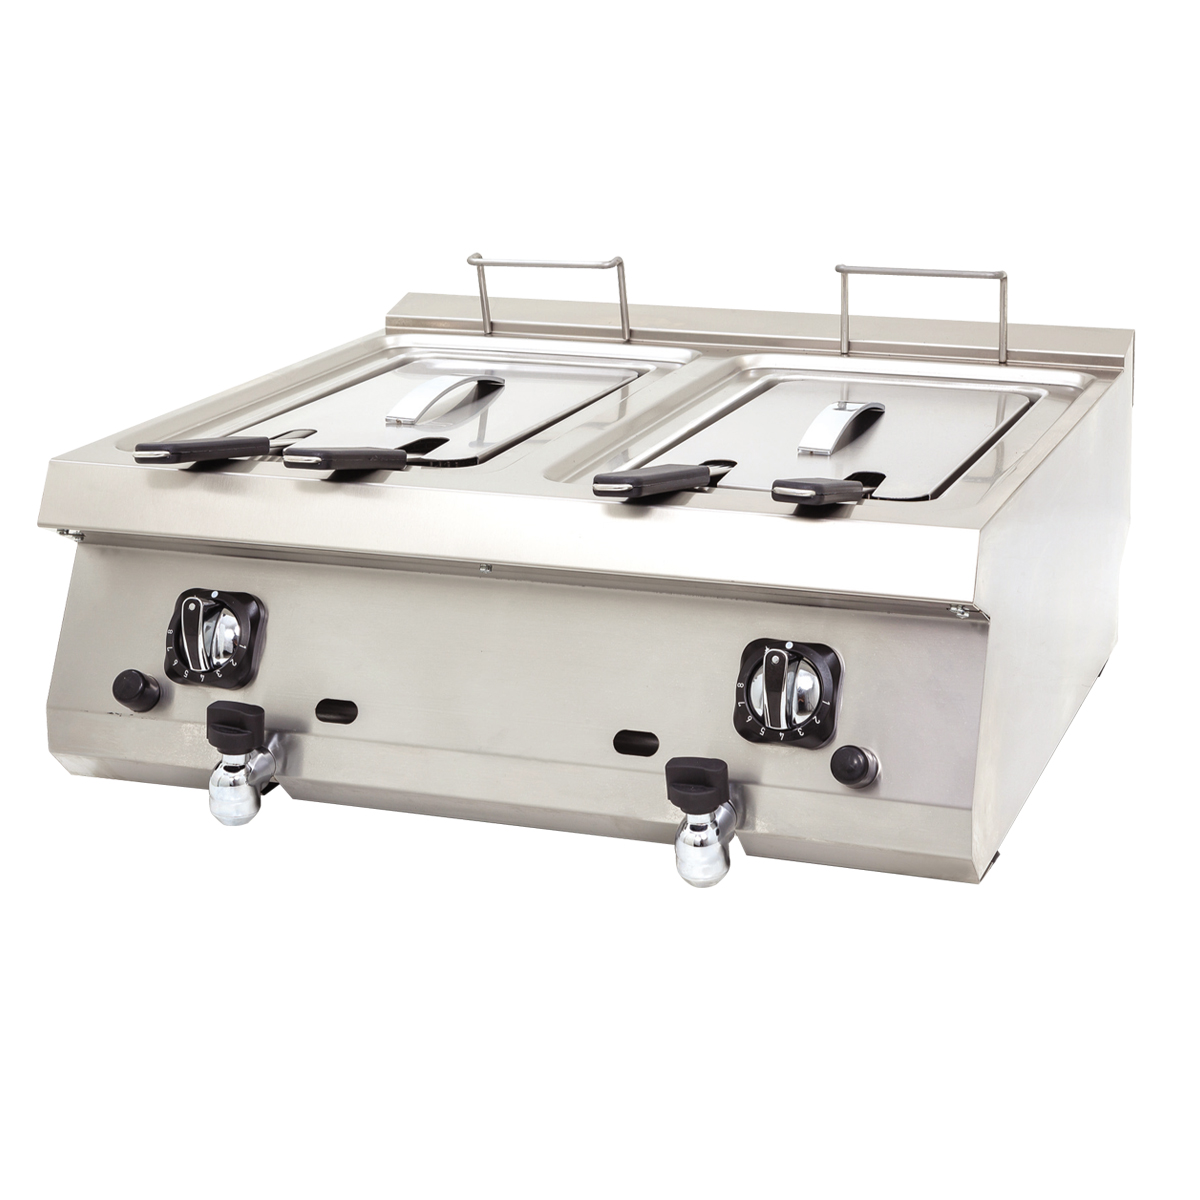 Gas Fryer - 70x60